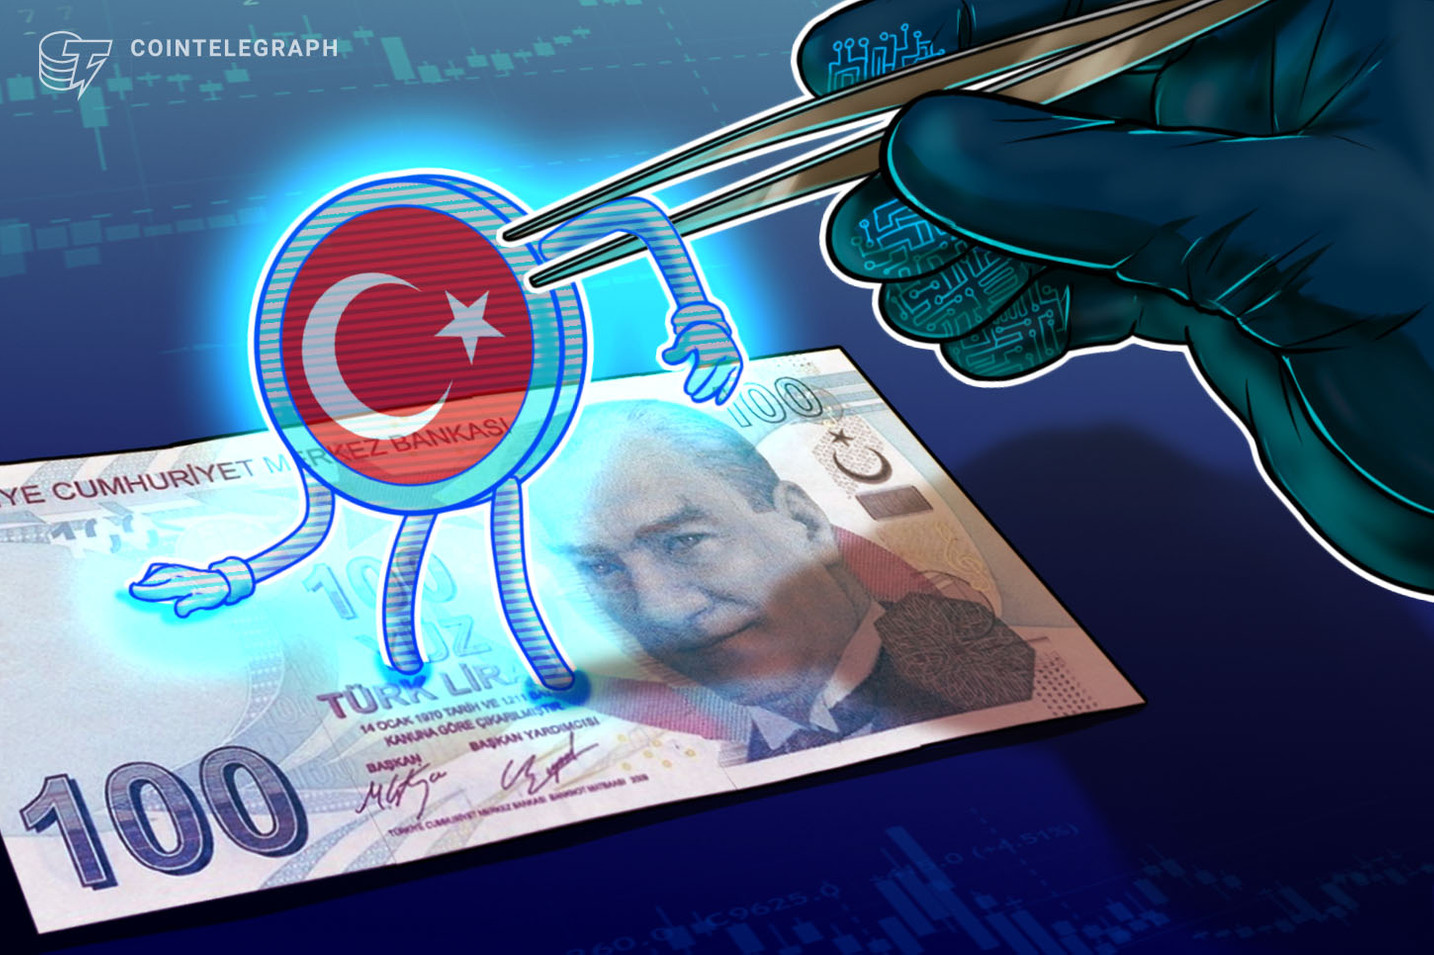 Amid inflation woes, Turkey announces CBDC tests planned for 2021